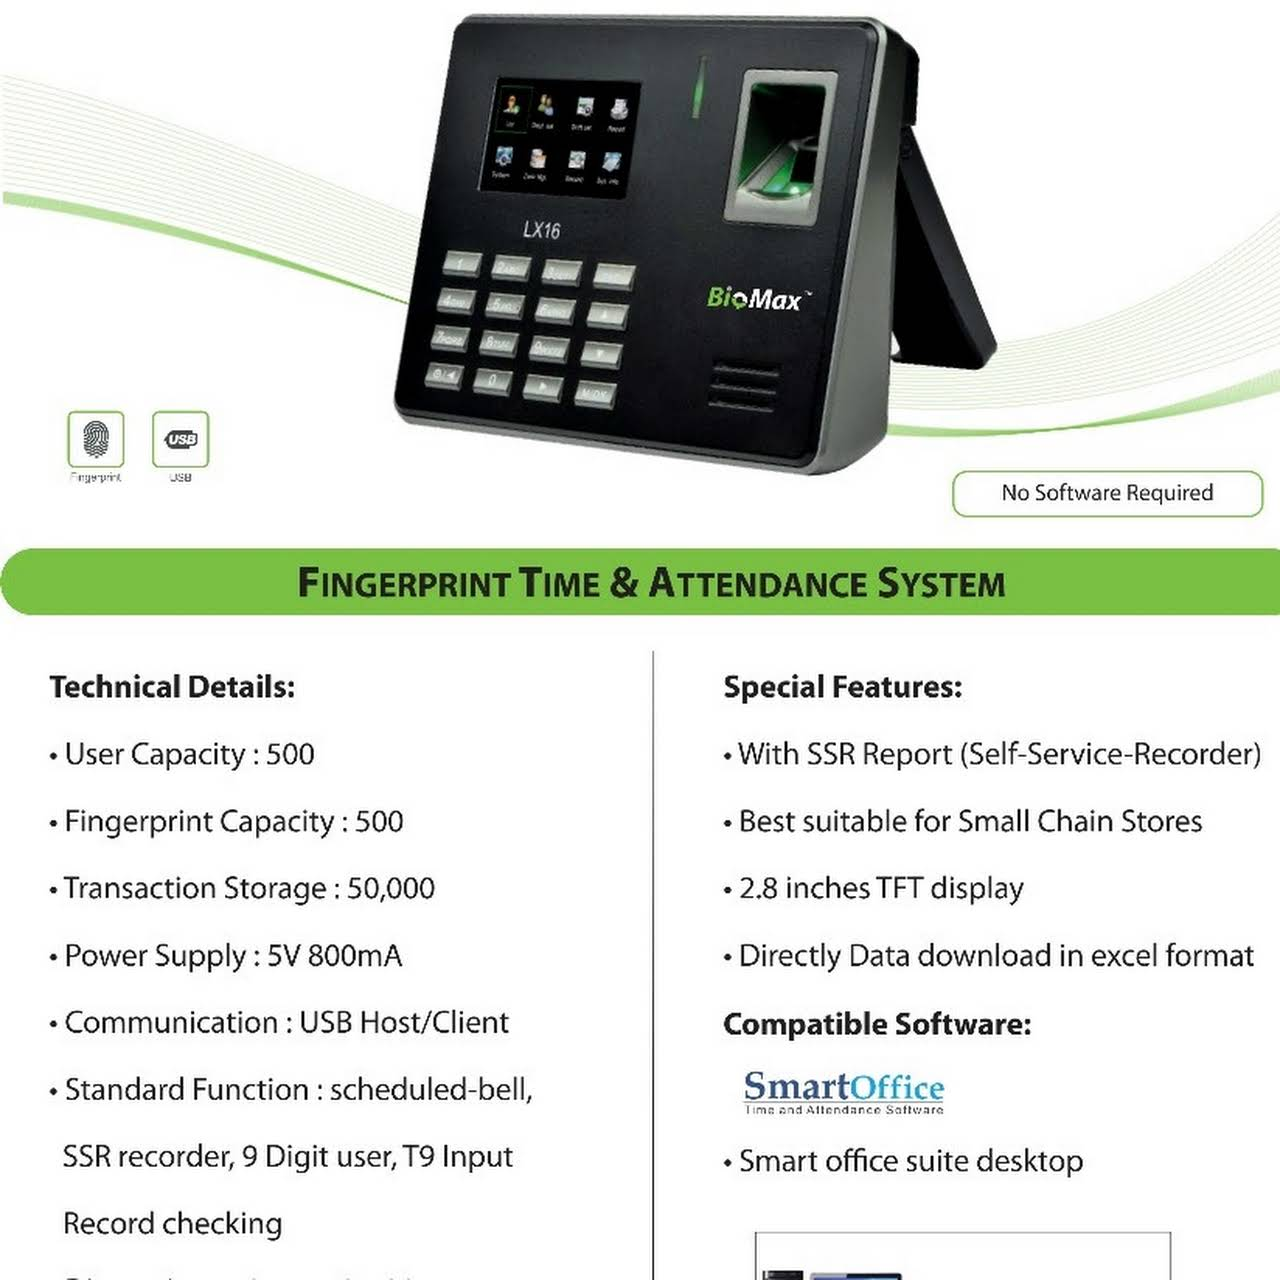 Best Fingerprint Attendance System